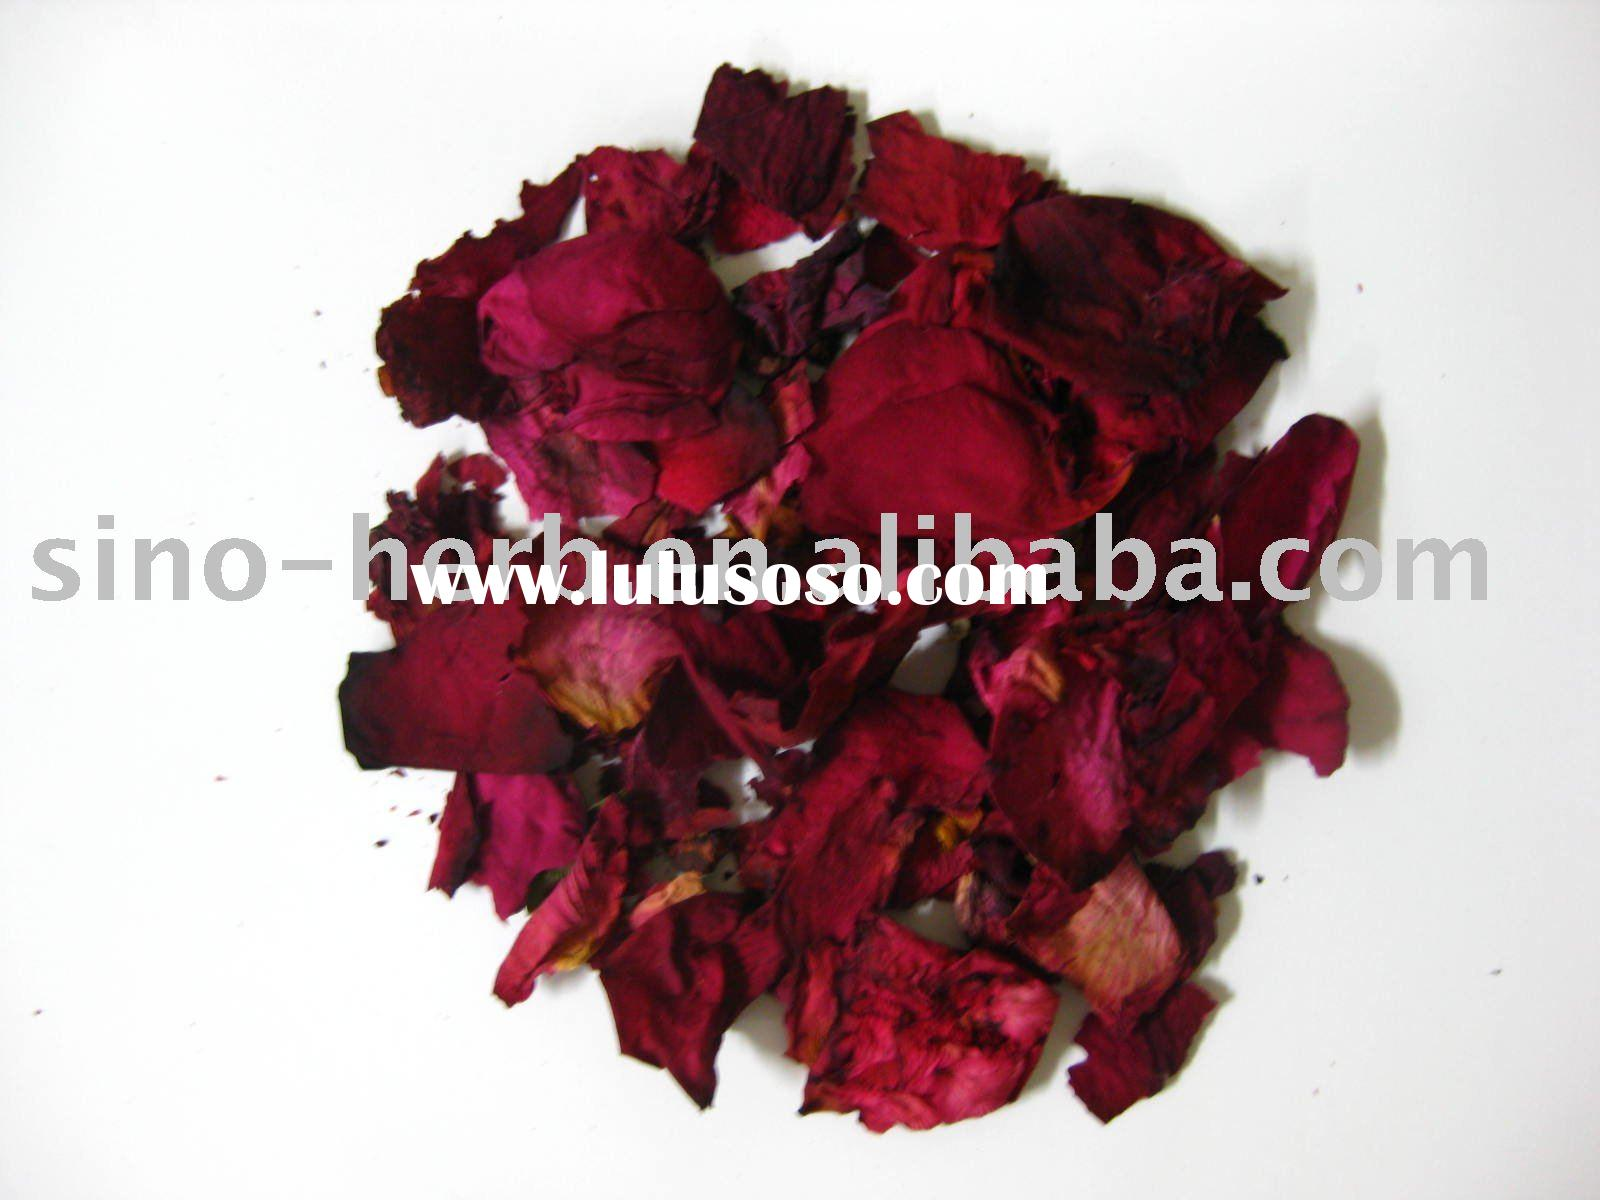 H07- big rose petal herbs herb extract